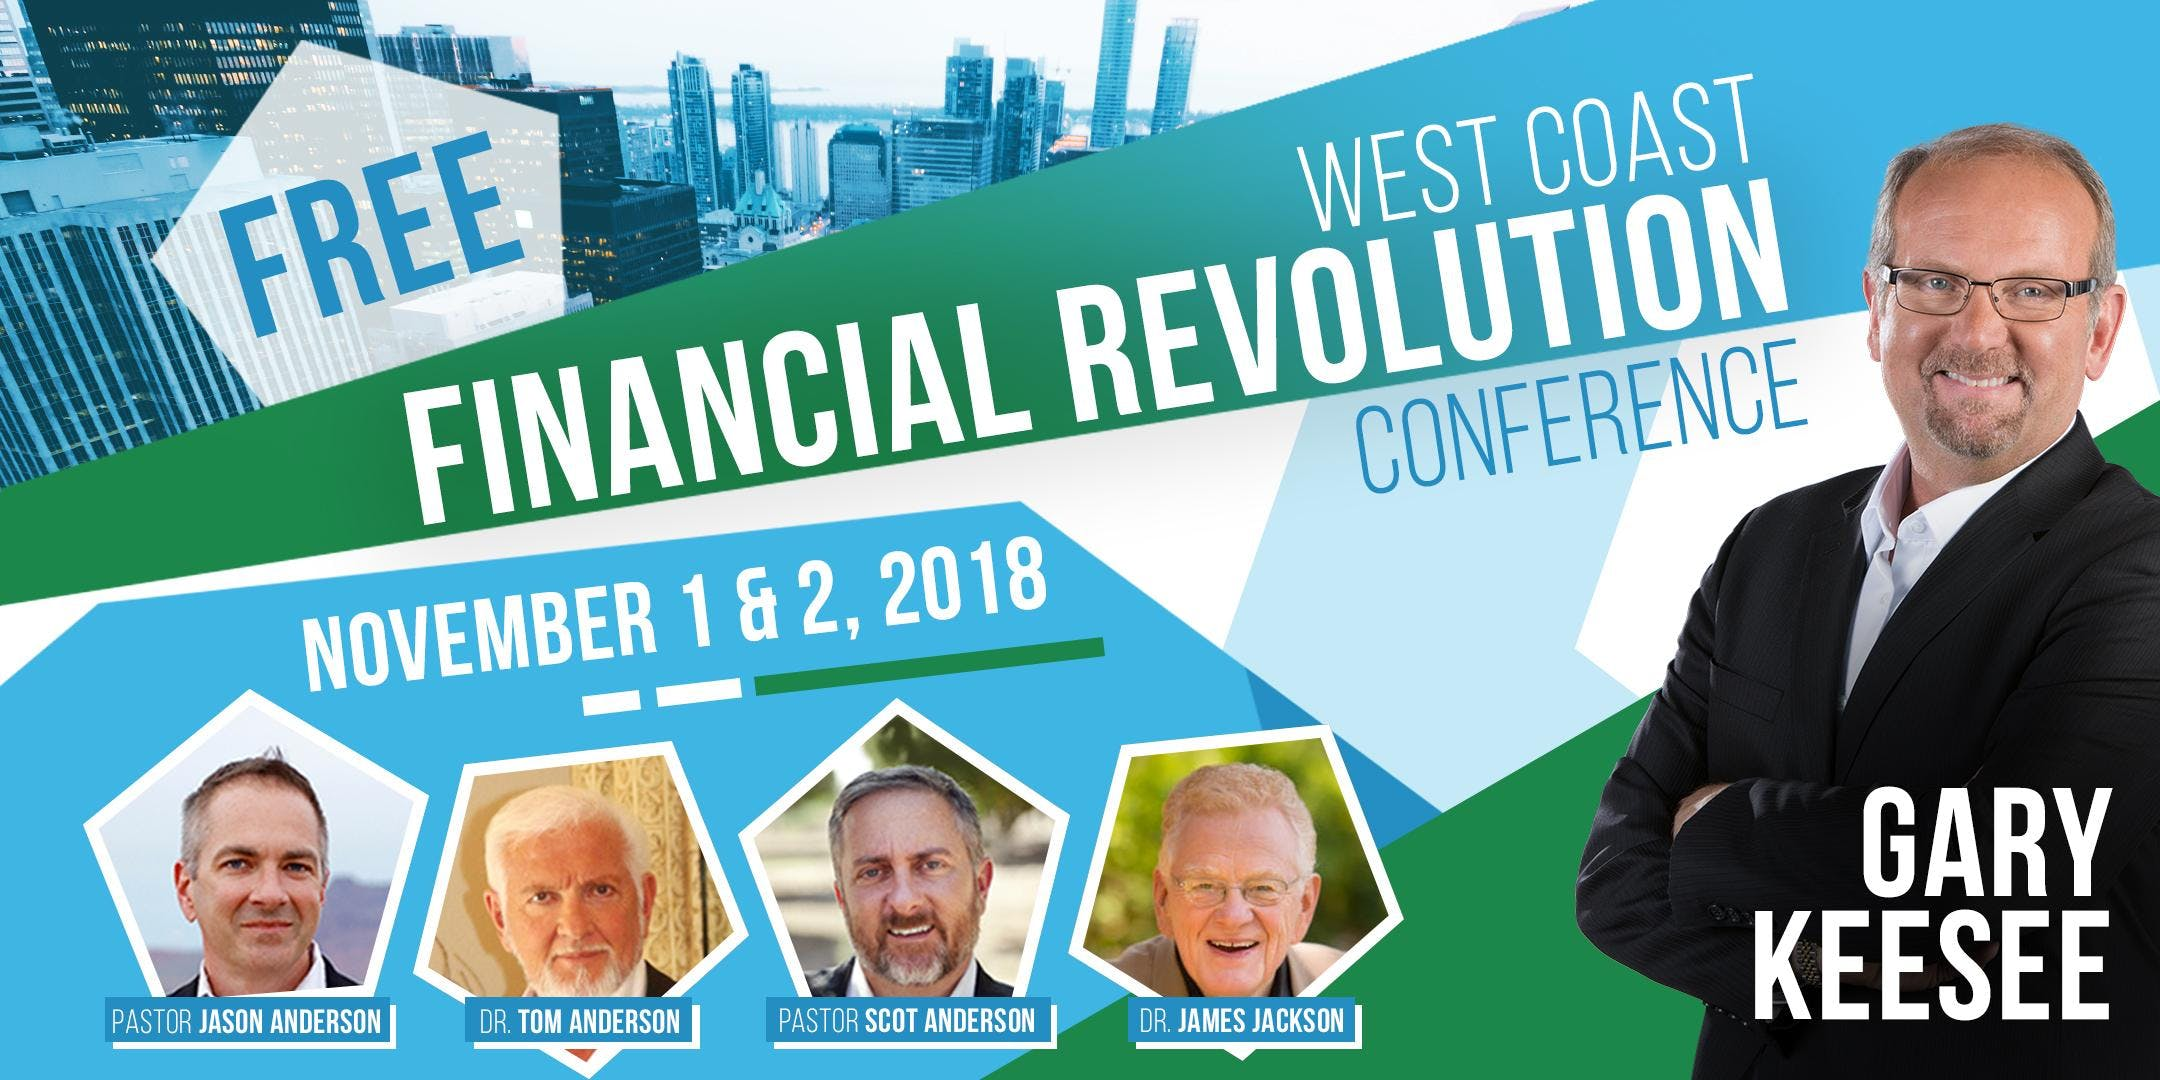 West Coast Financial Revolution Conference